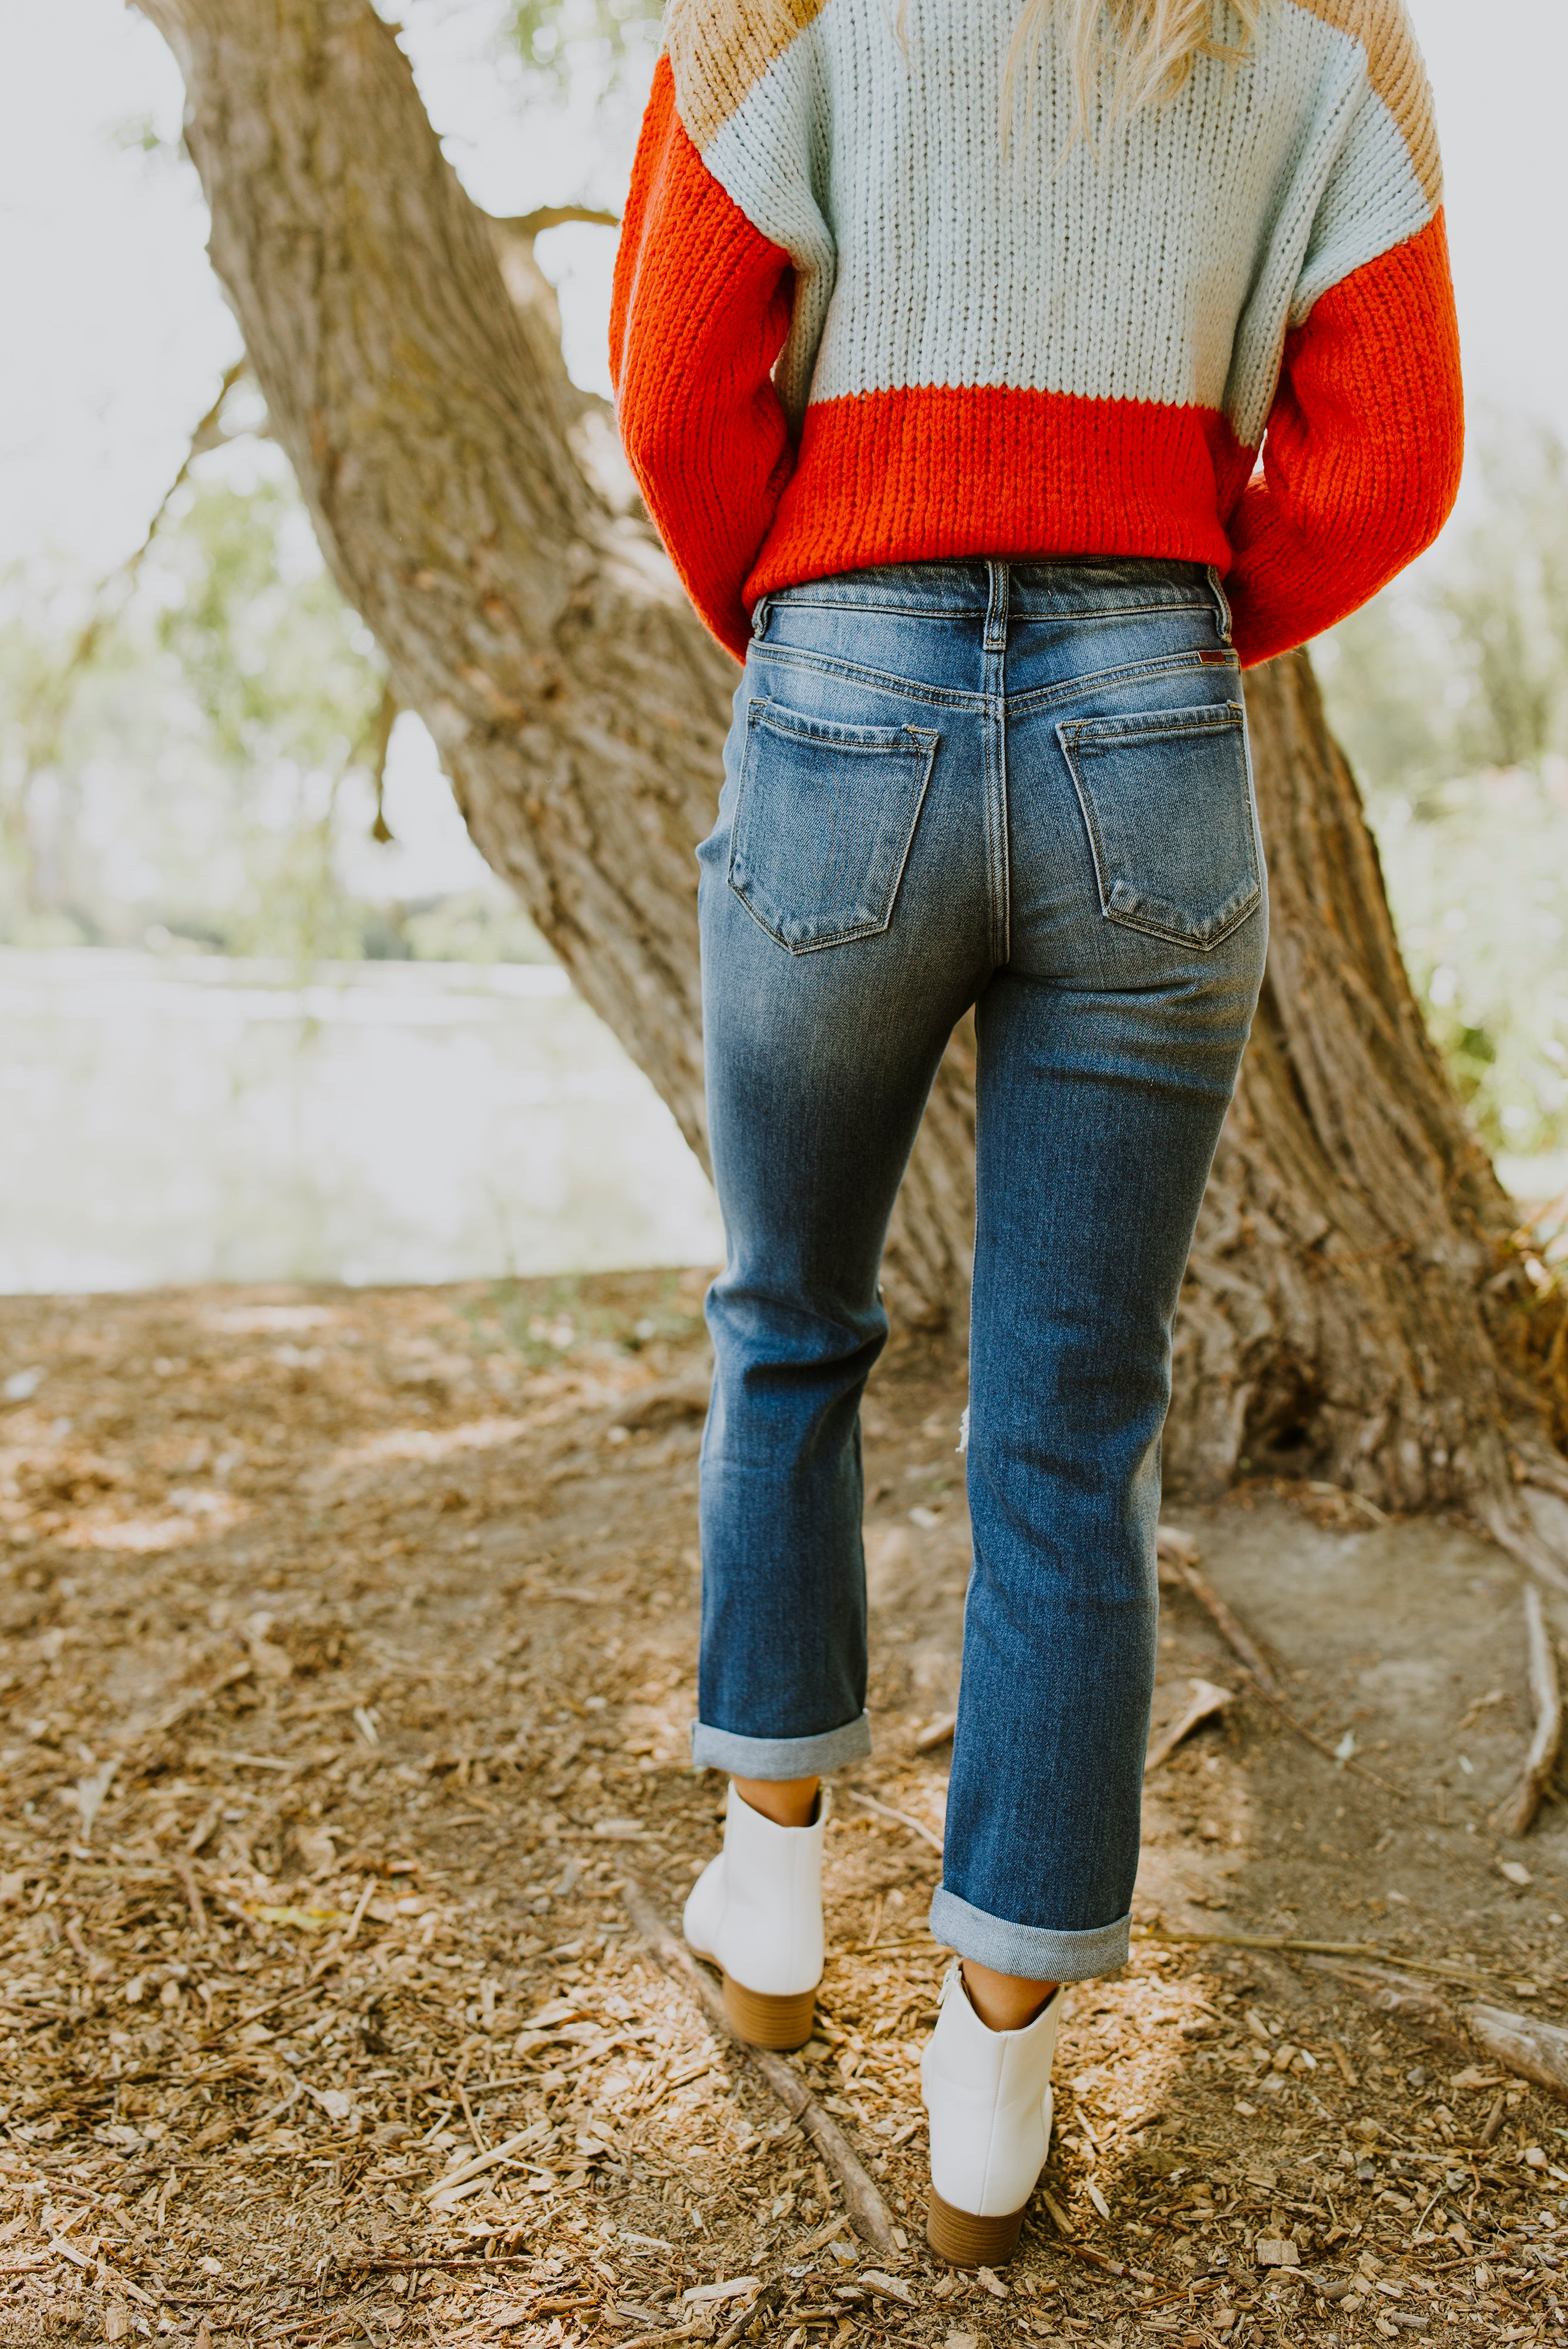 boutique, fall outfits, outfit ideas, cute fall outfits, mom jeans, ripped jeans outfit, boyfriend jeans, boyfriend jeans outfit fall, ripped mom jeans, women's jeans, women's denim, women's boyfriend jeans, cuffed boyfriend jeans, fall outfits 2020, cuffed mom jeans, ripped jeans, fall 2020 fashion trends, sweater and jeans outfit, boyfriend jeans, cuffed jeans, women's modest clothing, modest fashion, online boutique, online shop, Shop Blush Lane